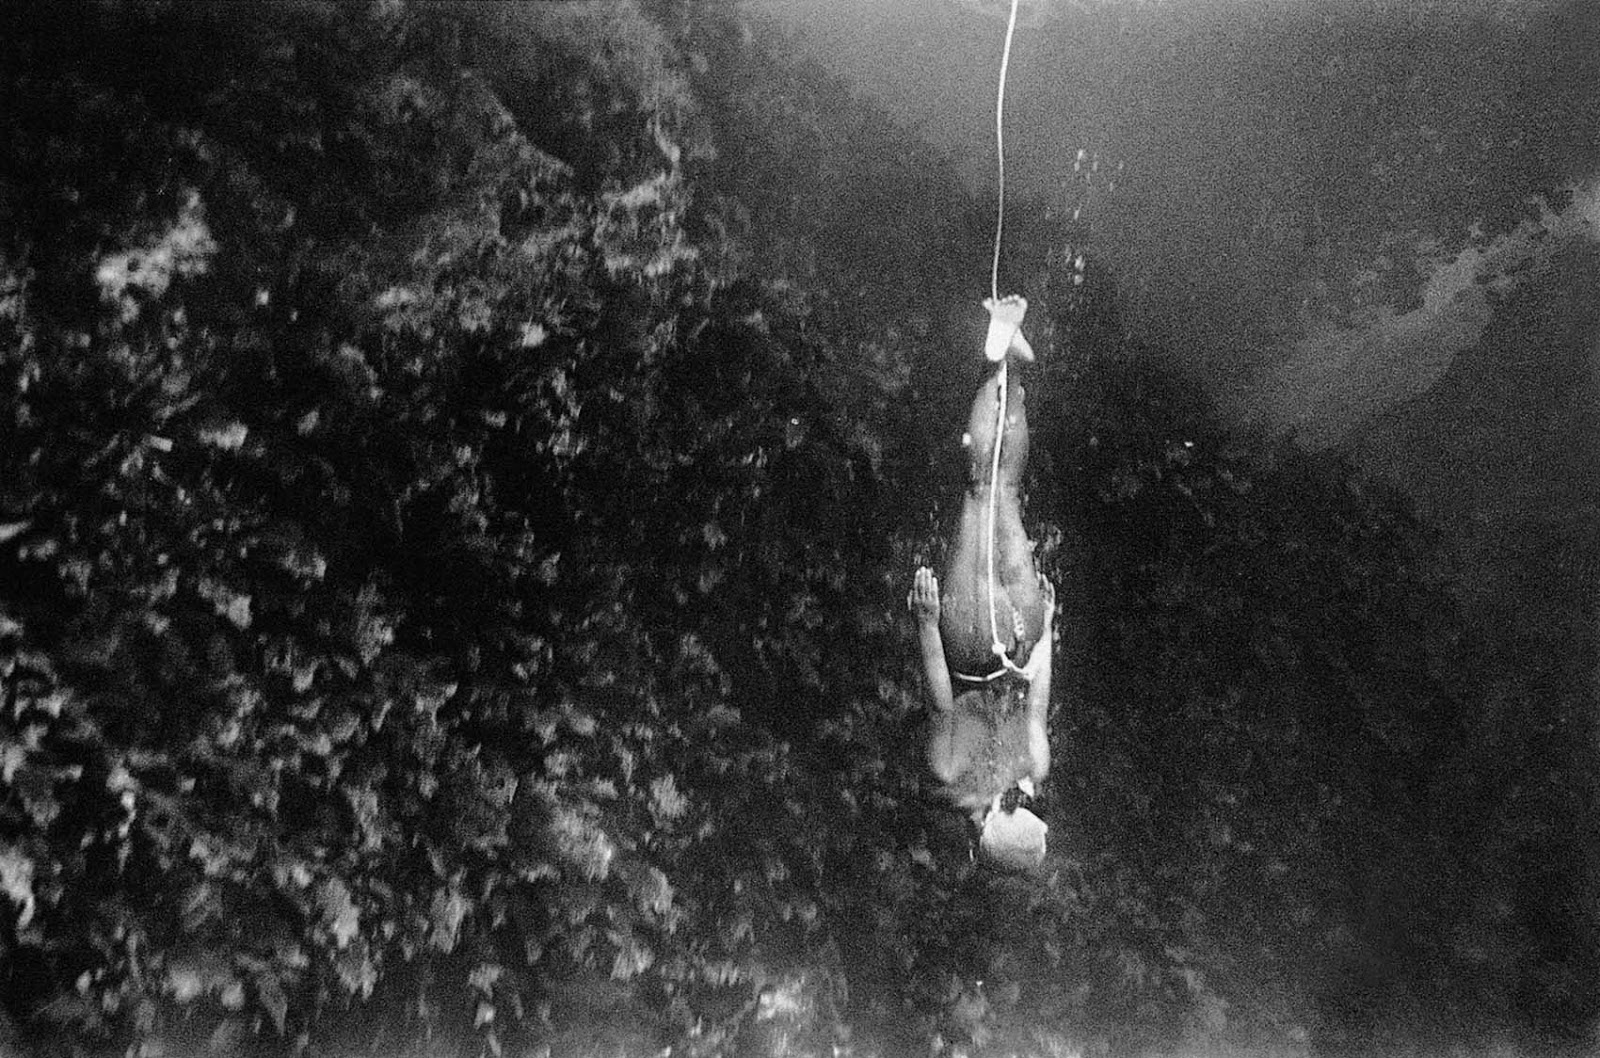 Those divers who descended the deepest would also wear a weighted belt around their waist to aid their descent.